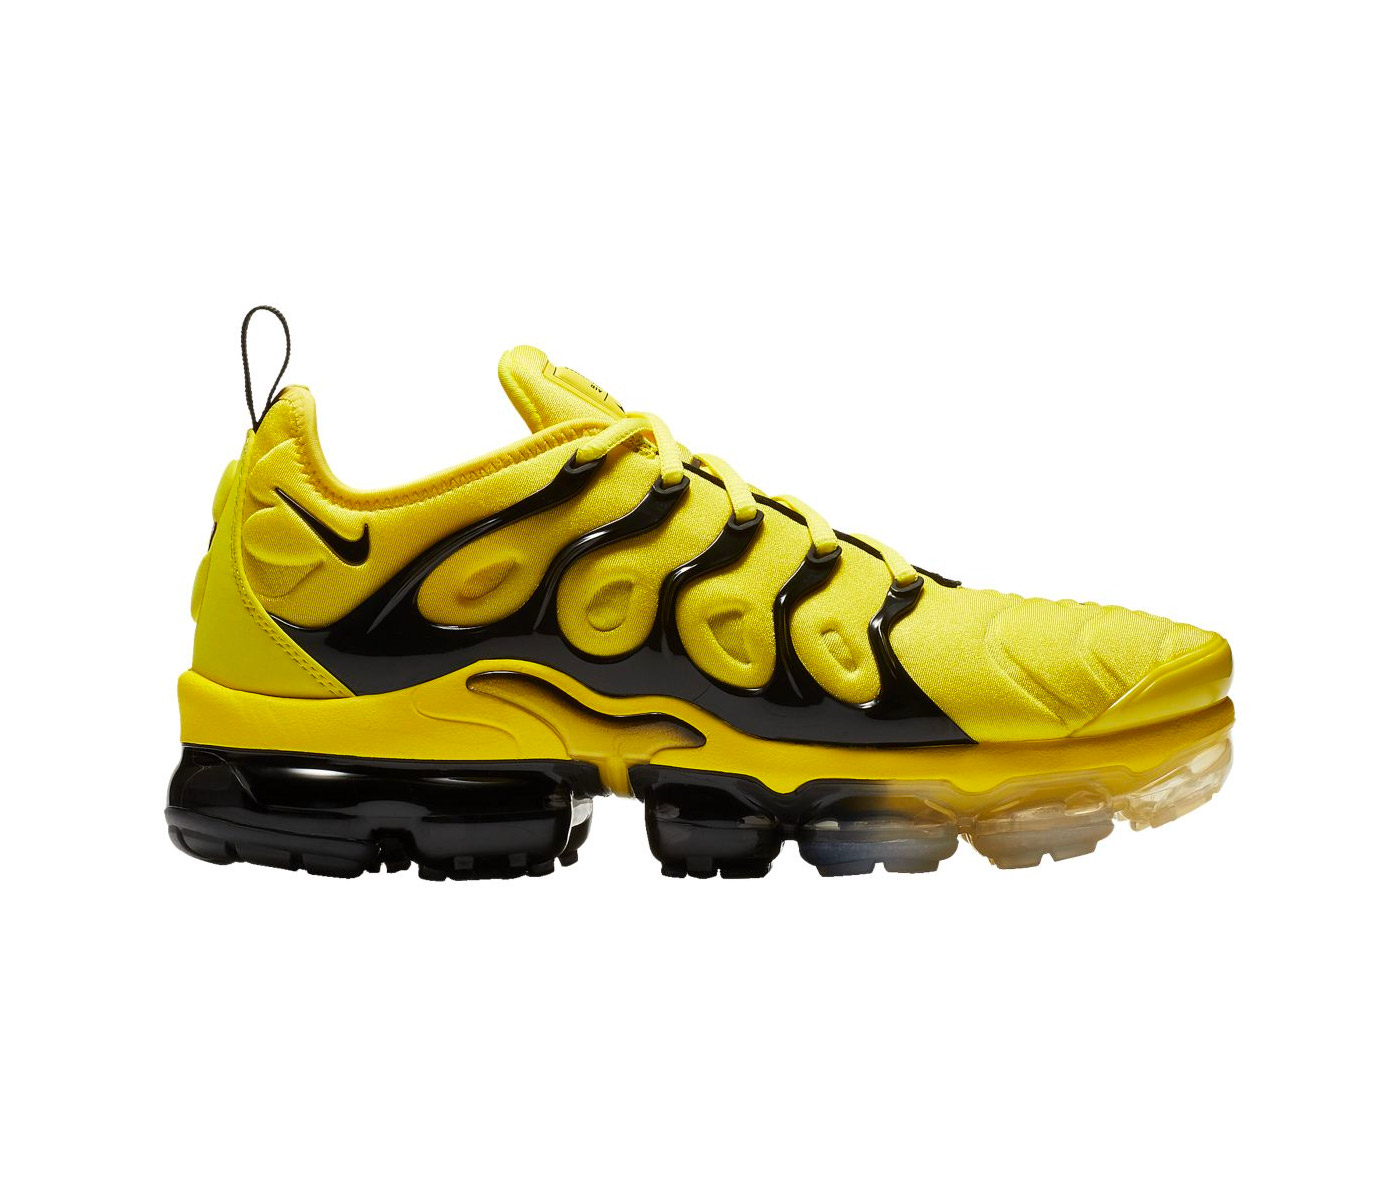 sports shoes 9ff91 eea41 Now Available: Nike Air VaporMax Plus